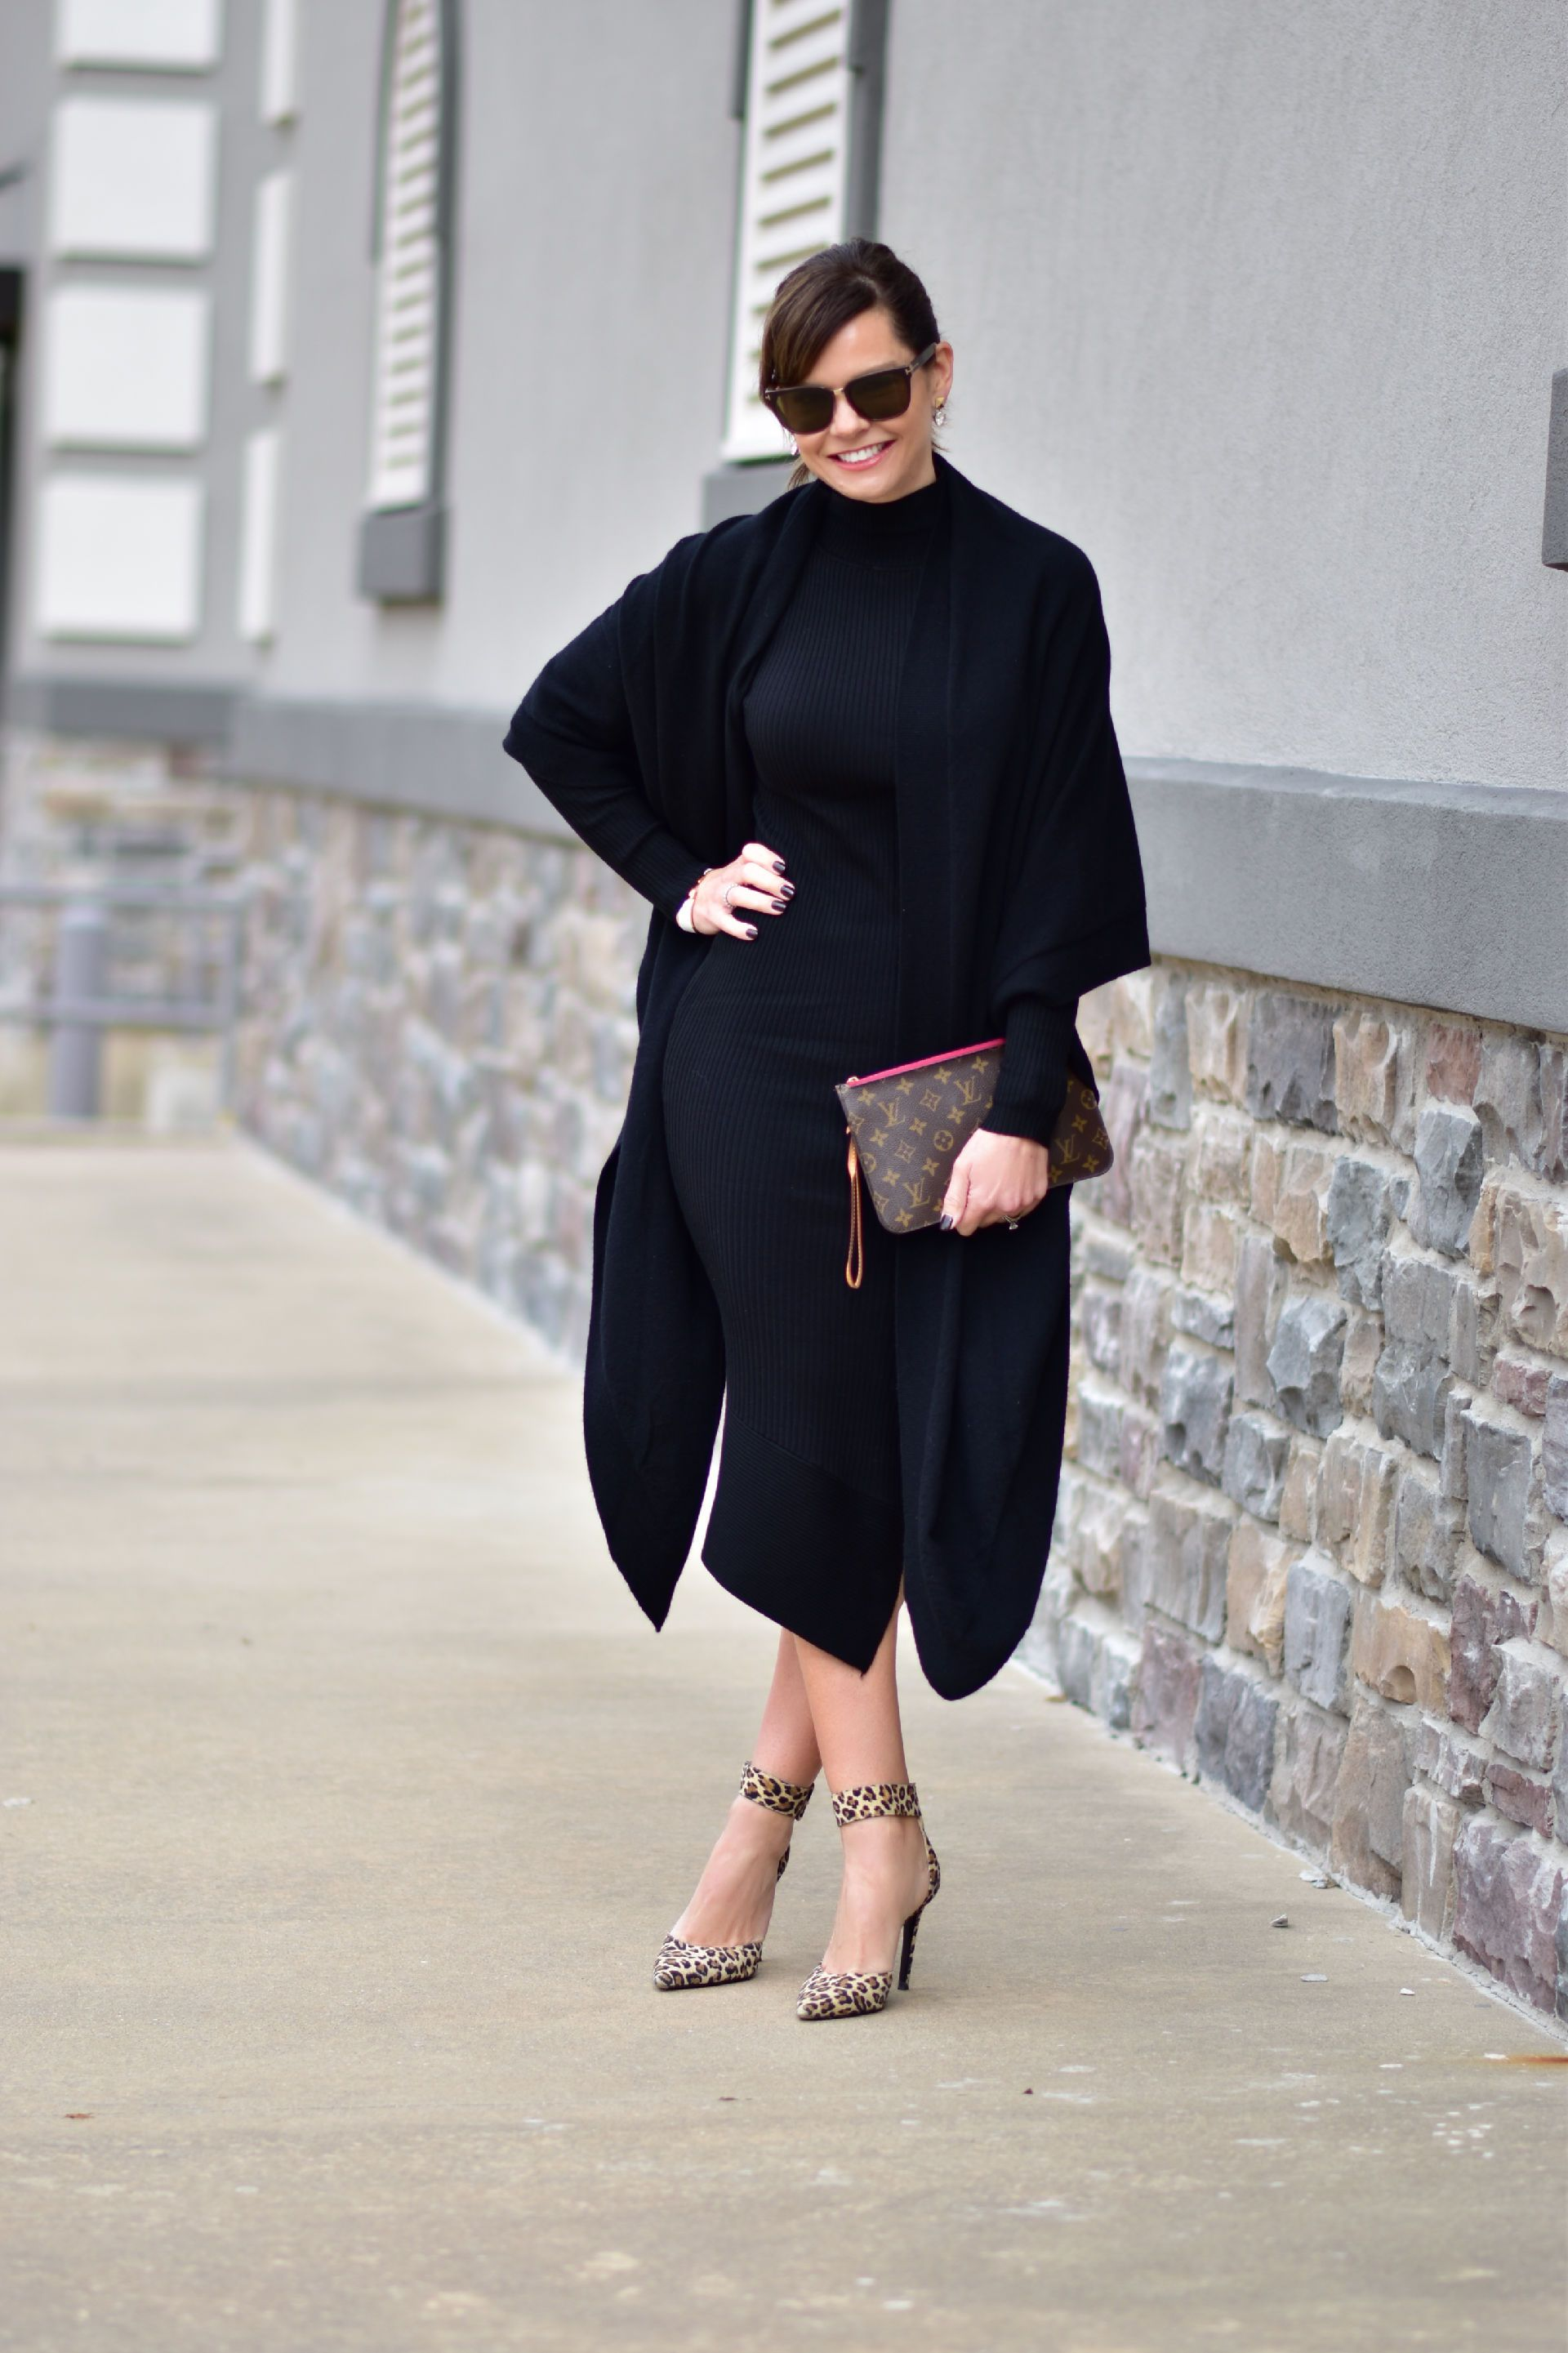 02d4578575 What to Wear to a Winter Graduation from Get Your Pretty On with Eileen  Fisher  gypo  getyourprettyon  eileenfisher  sponsored